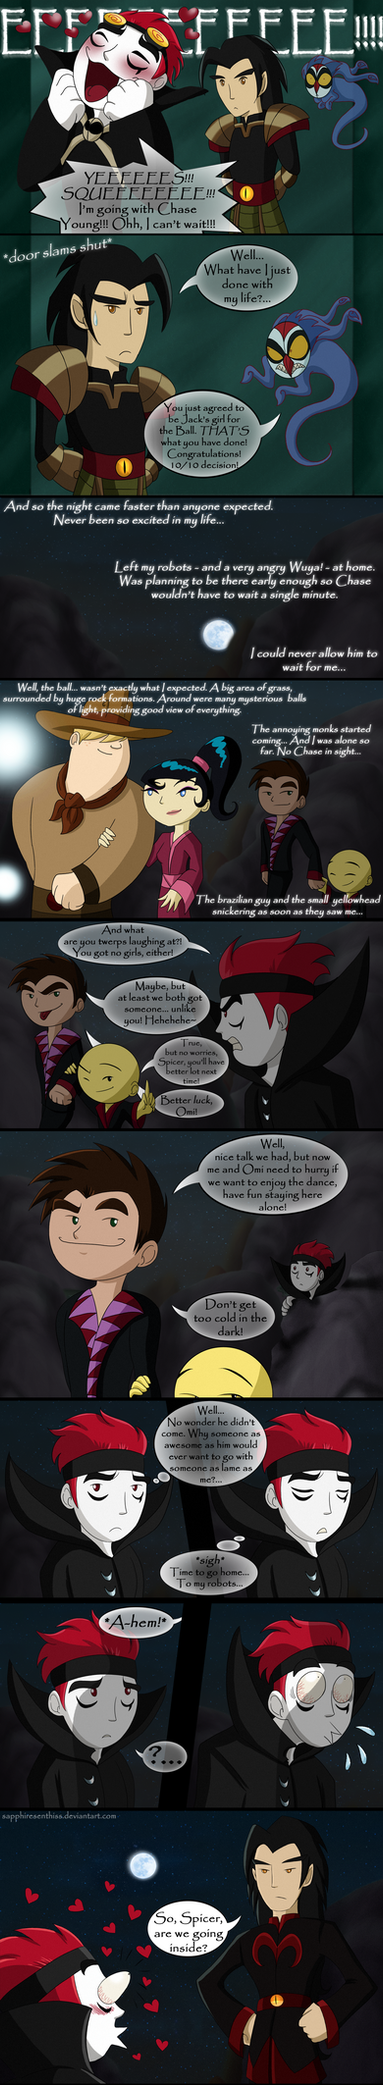 The Ball of The Moon - PAGE 5 (CHACK Comic) by Sapphiresenthiss